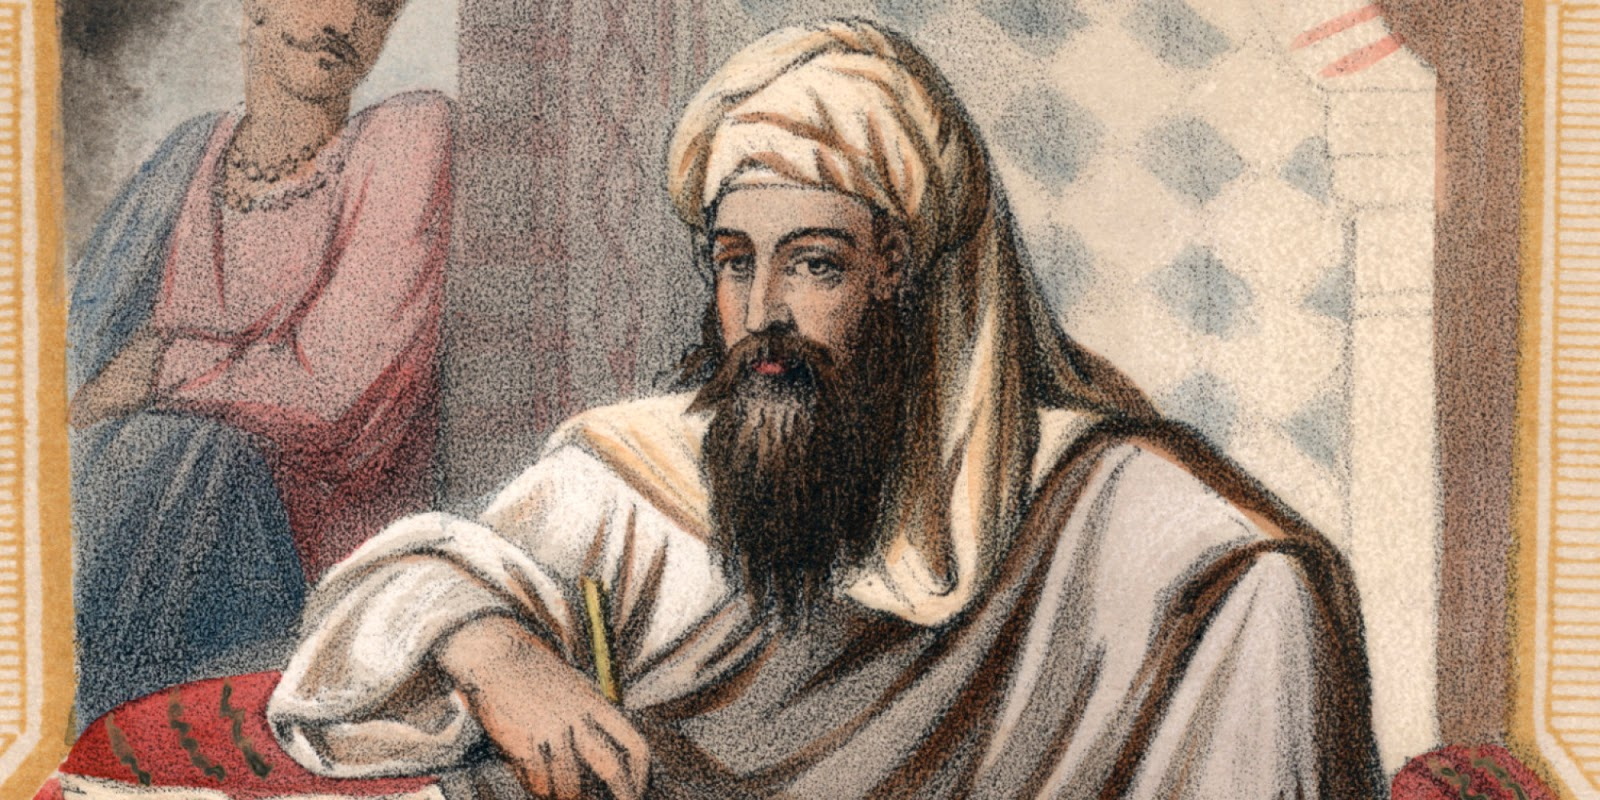 mohammed and jesus Did jesus predict muhammad a biblical portal between christianity and islam 51k huffpost multicultural/hpmg news news us news world news business.